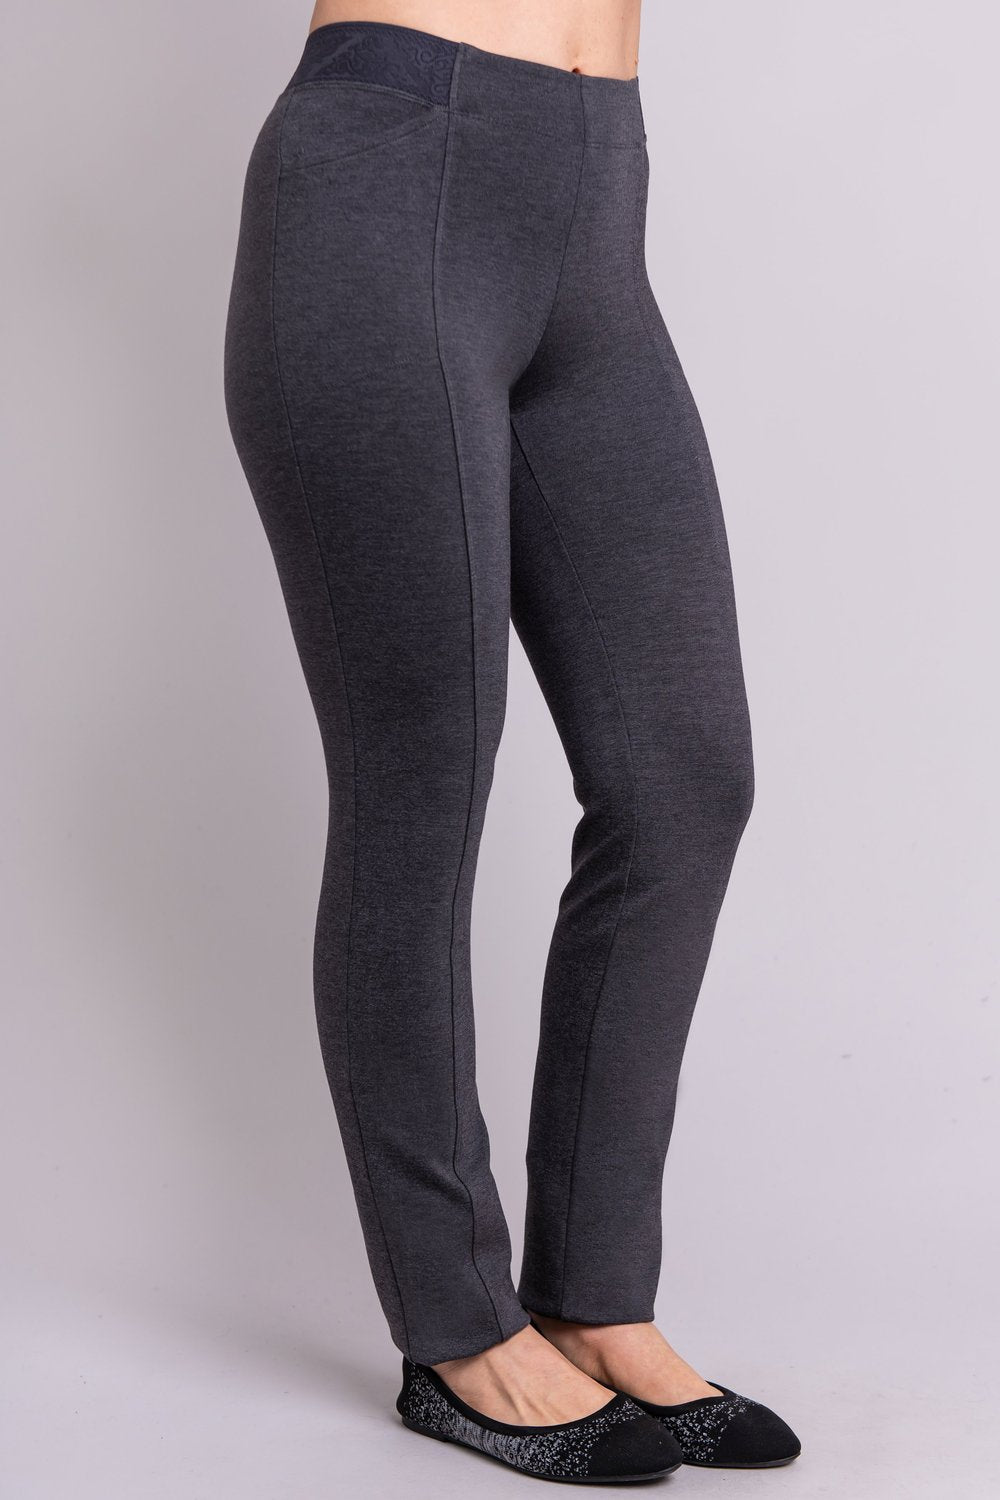 Women's petite grey tailored pant, with slim and narrow leg. Made of sustainable and natural bamboo fibers, fair-trade.